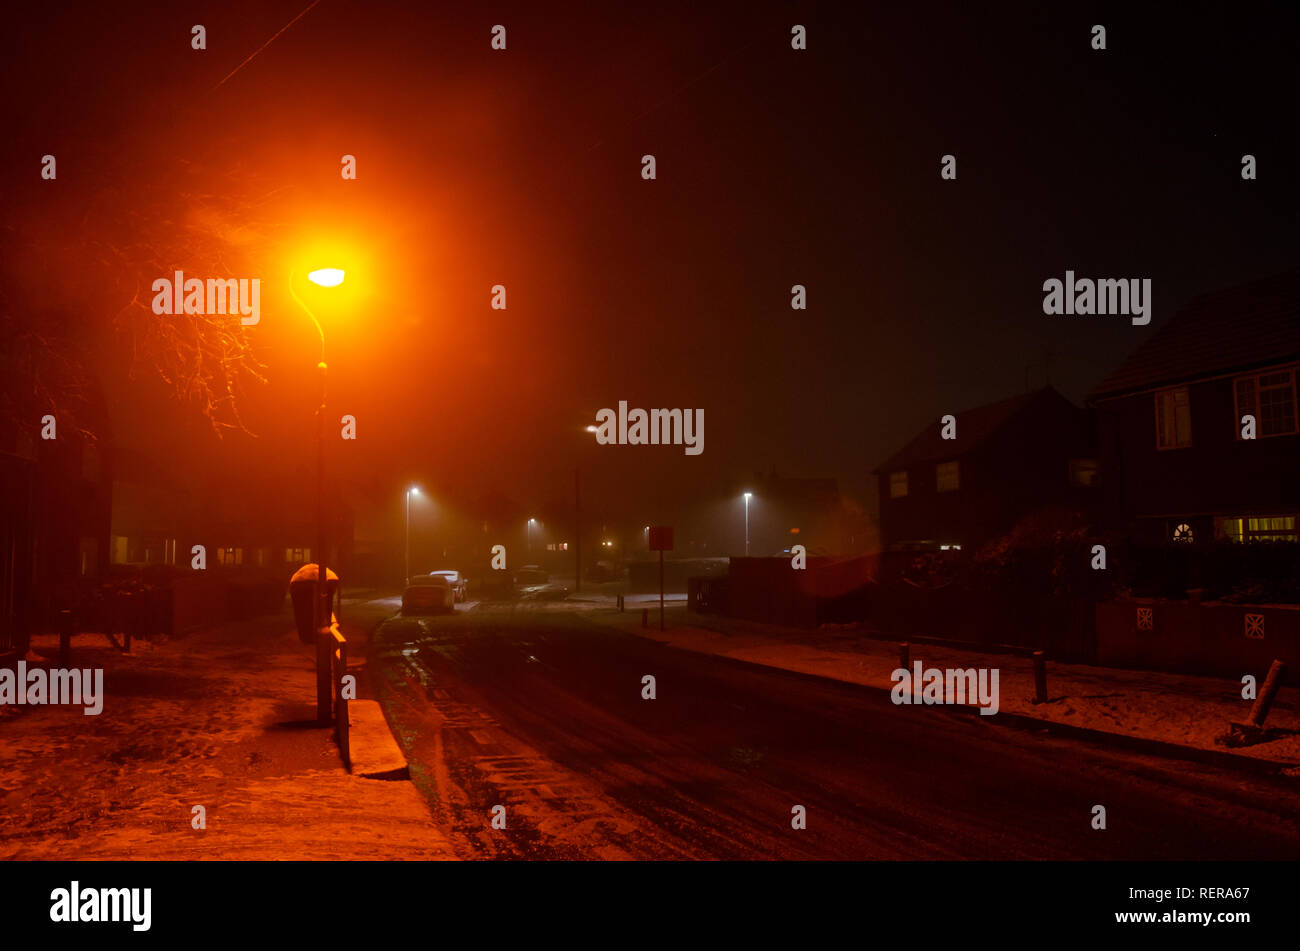 reading-uk-22nd-jan-2019-uk-weather-the-ground-is-covered-with-snow-following-snow-showers-in-the-late-afternoon-in-reading-uk-matthew-ashmorealamy-live-news-RERA67.jpg